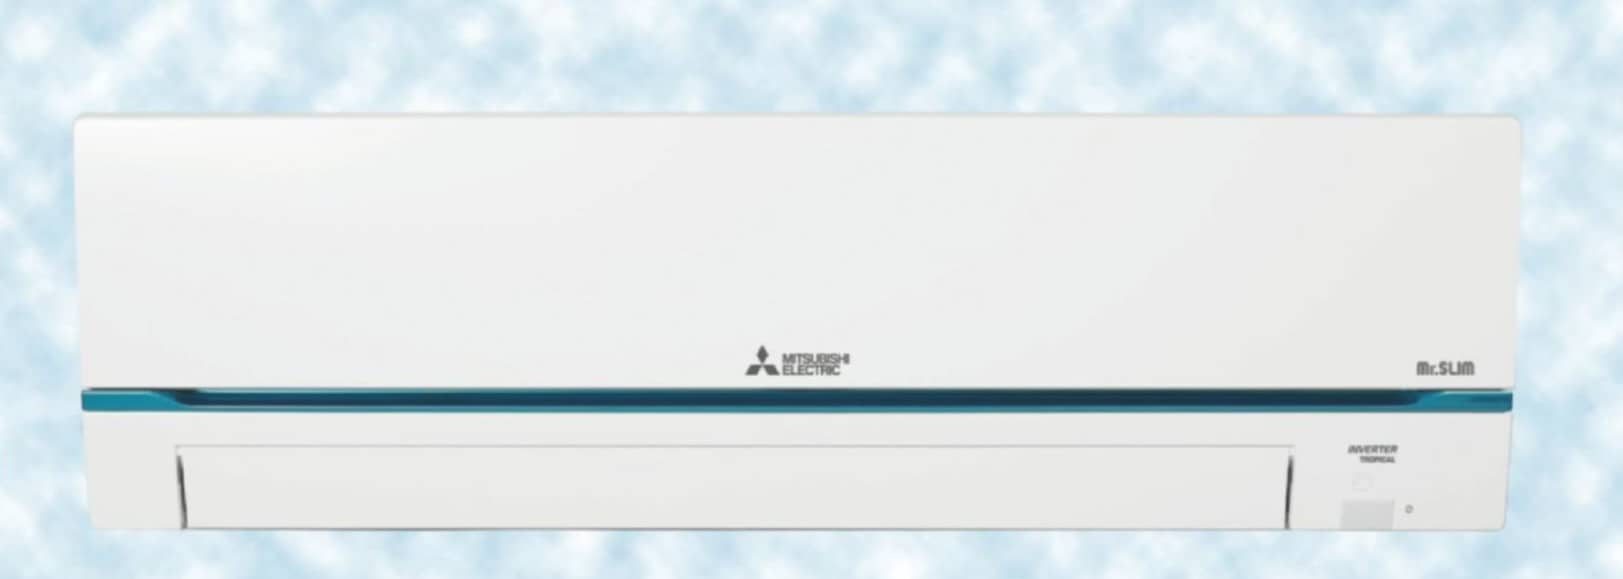 'We Innovate, We Resonate' with Mitsubishi Electric Air Conditioners